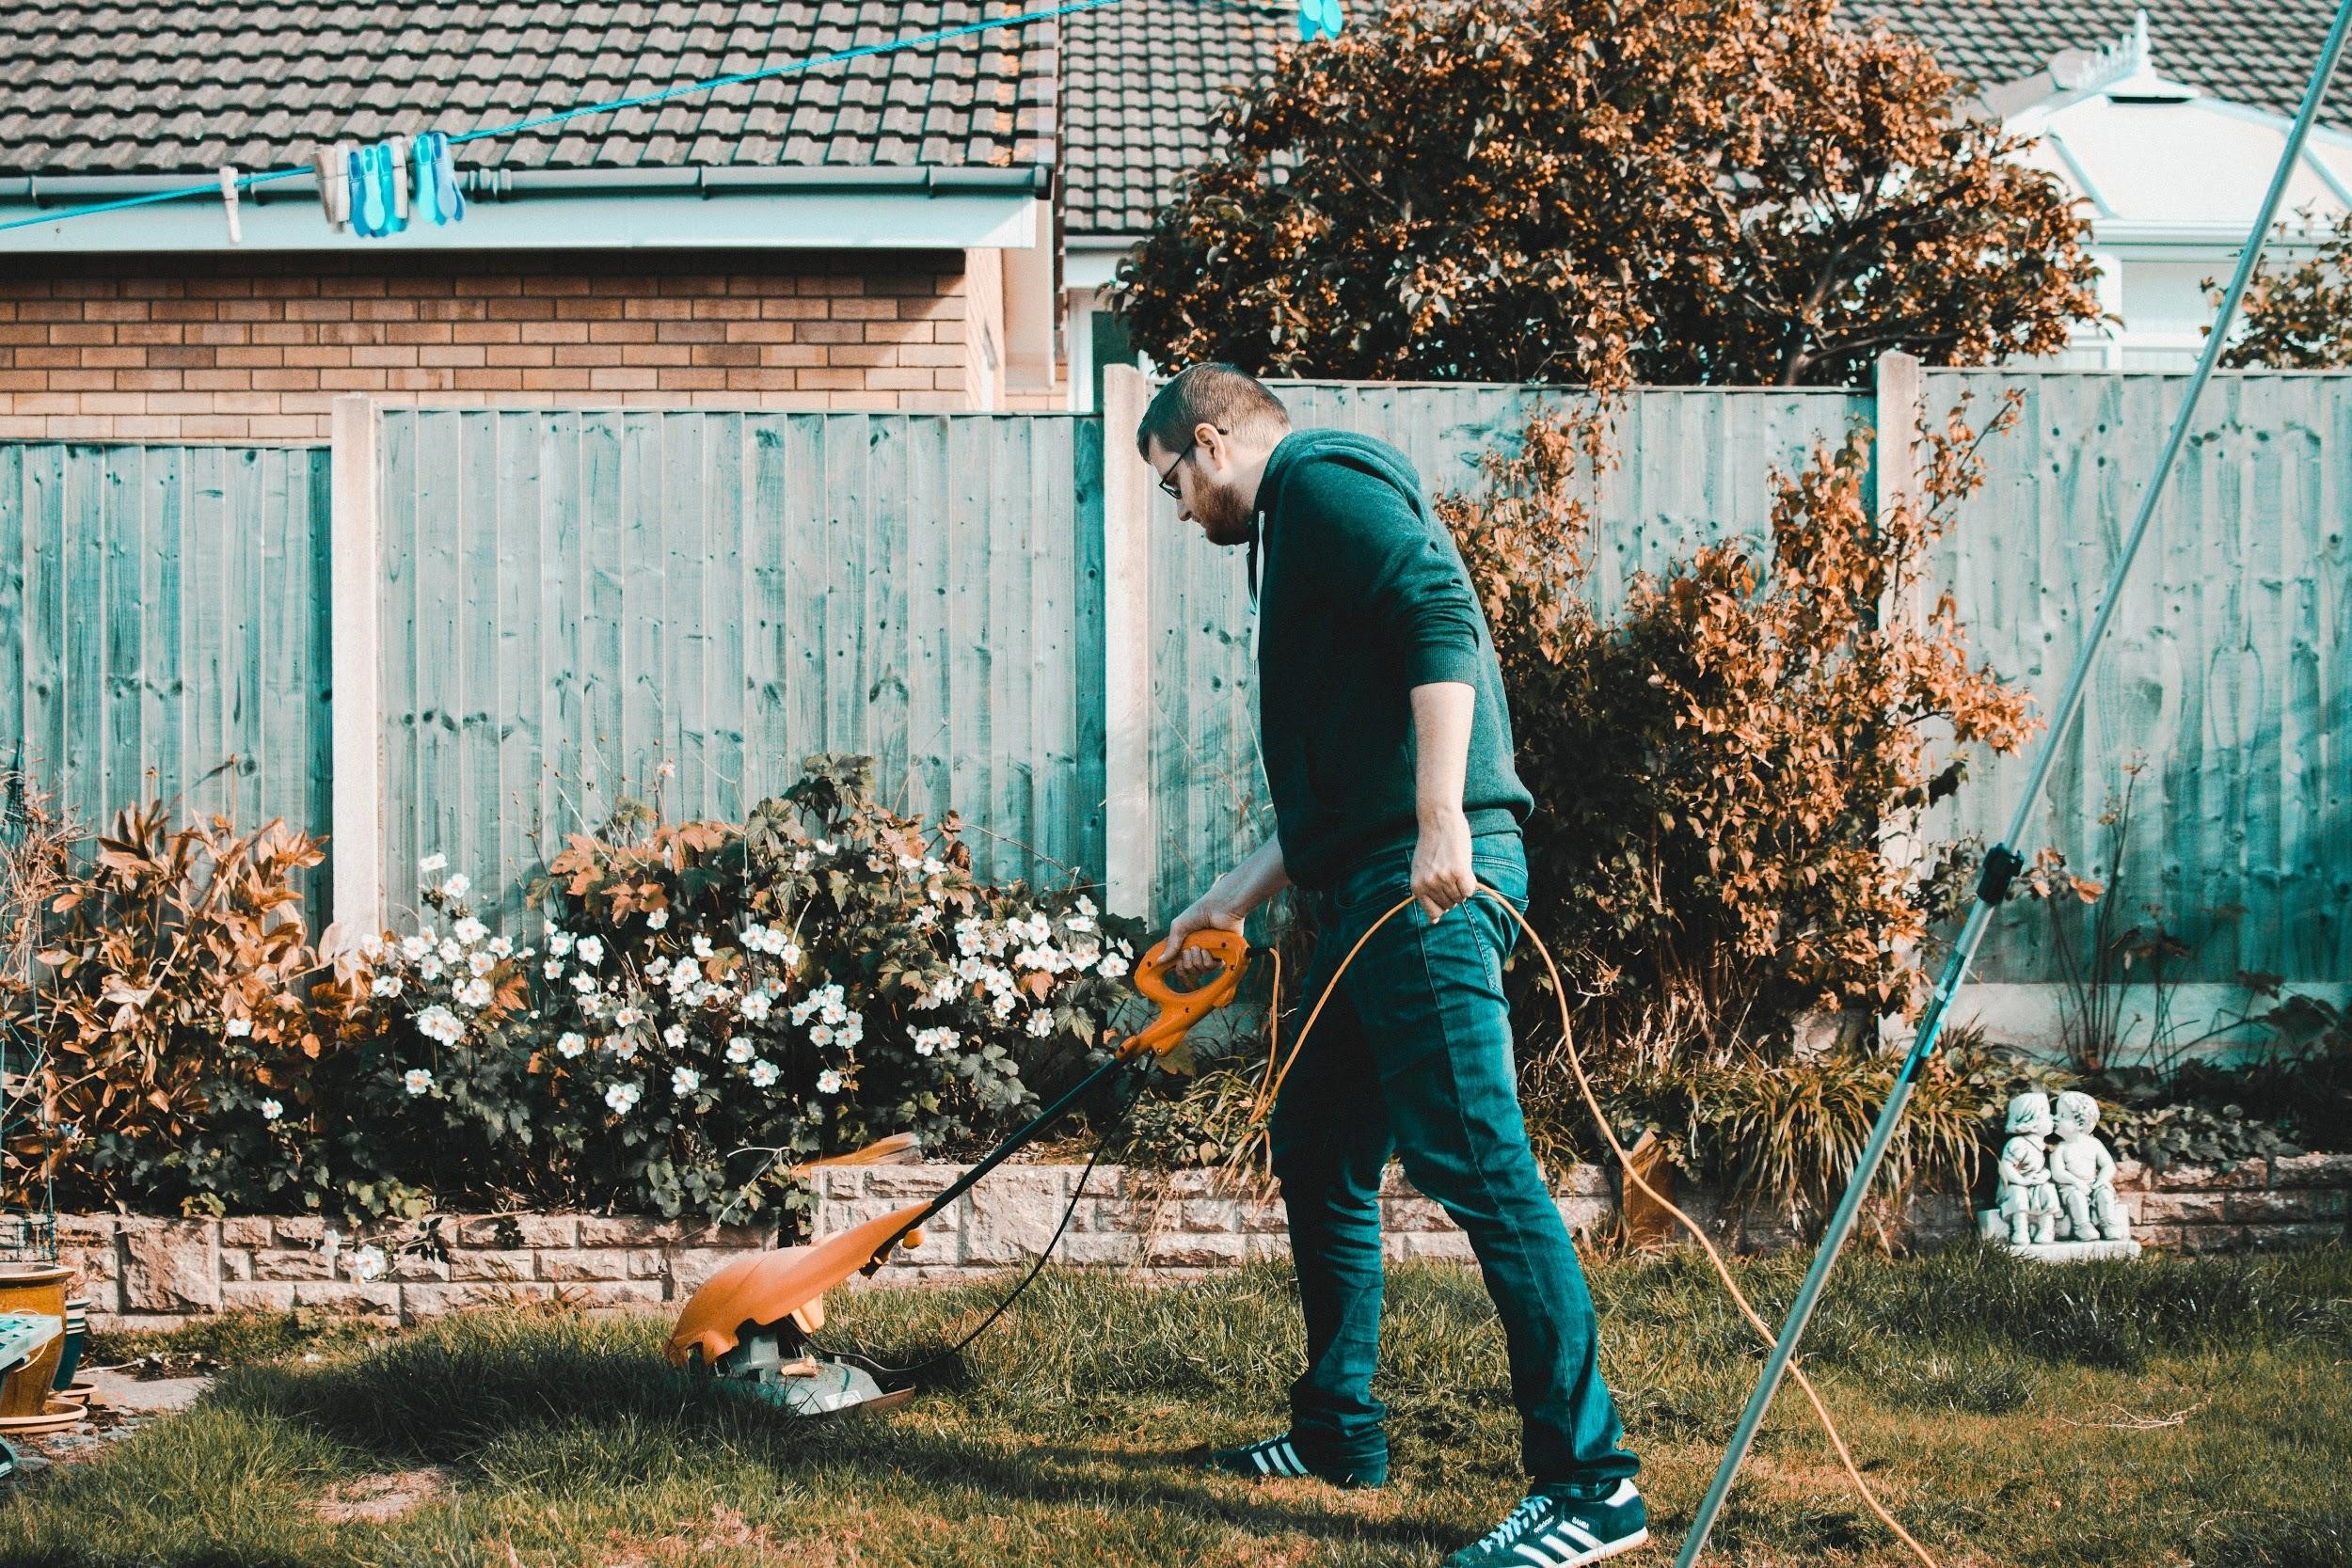 man mowing the lawn and gardening, one of the productive things to do at home